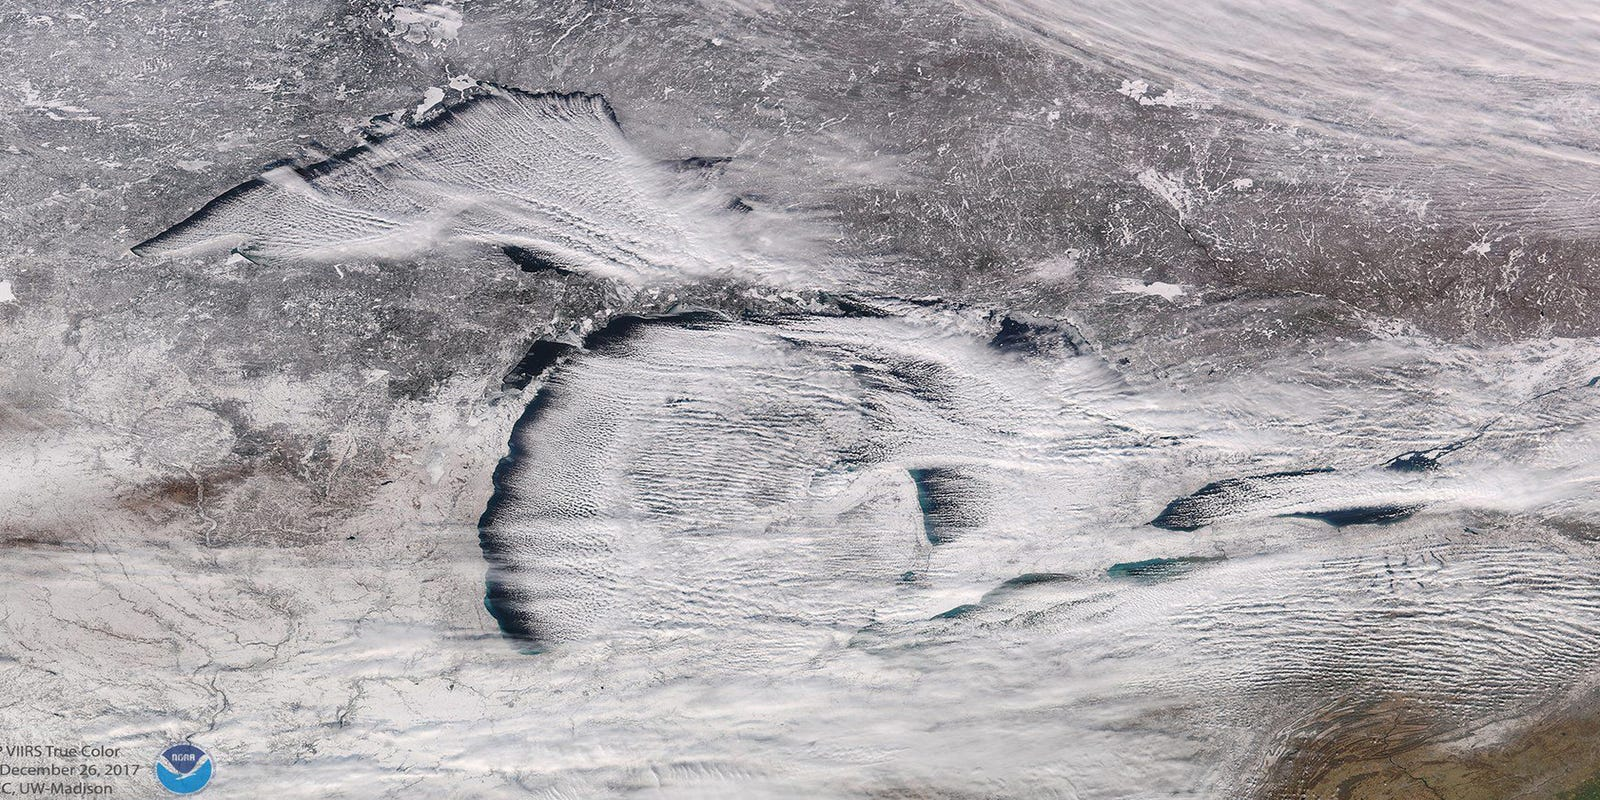 Satellite image captures lake effect snow over Great Lakes